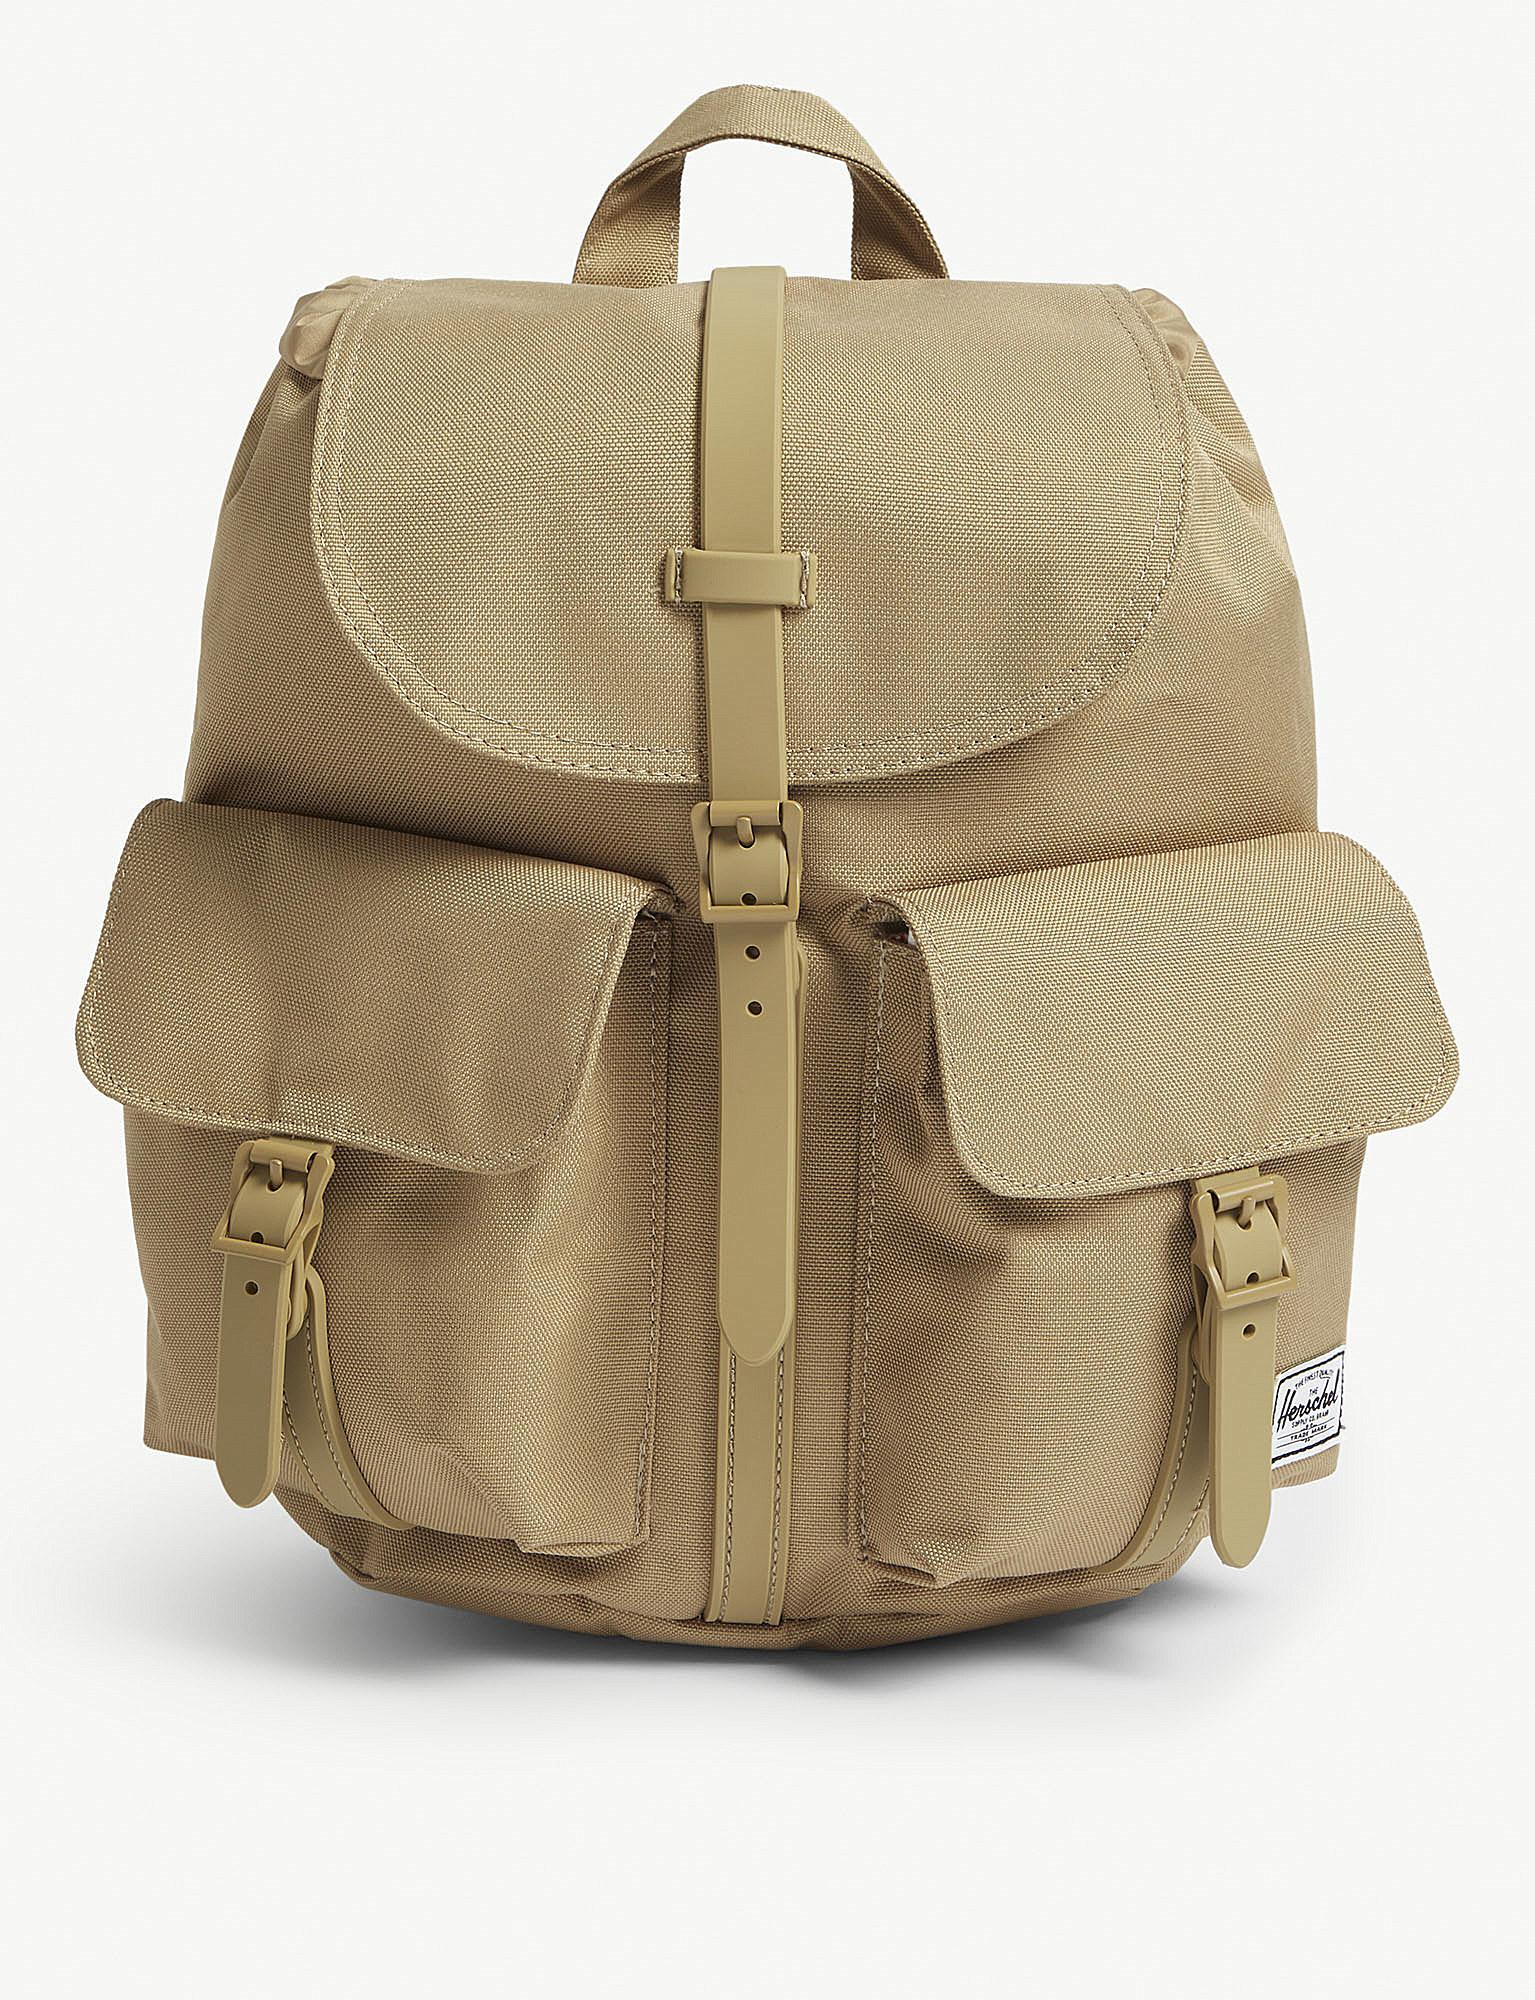 Herschel Supply Co. Canvas Dawson Backpack Xs in Natural - Lyst fe6e50d2e77bd